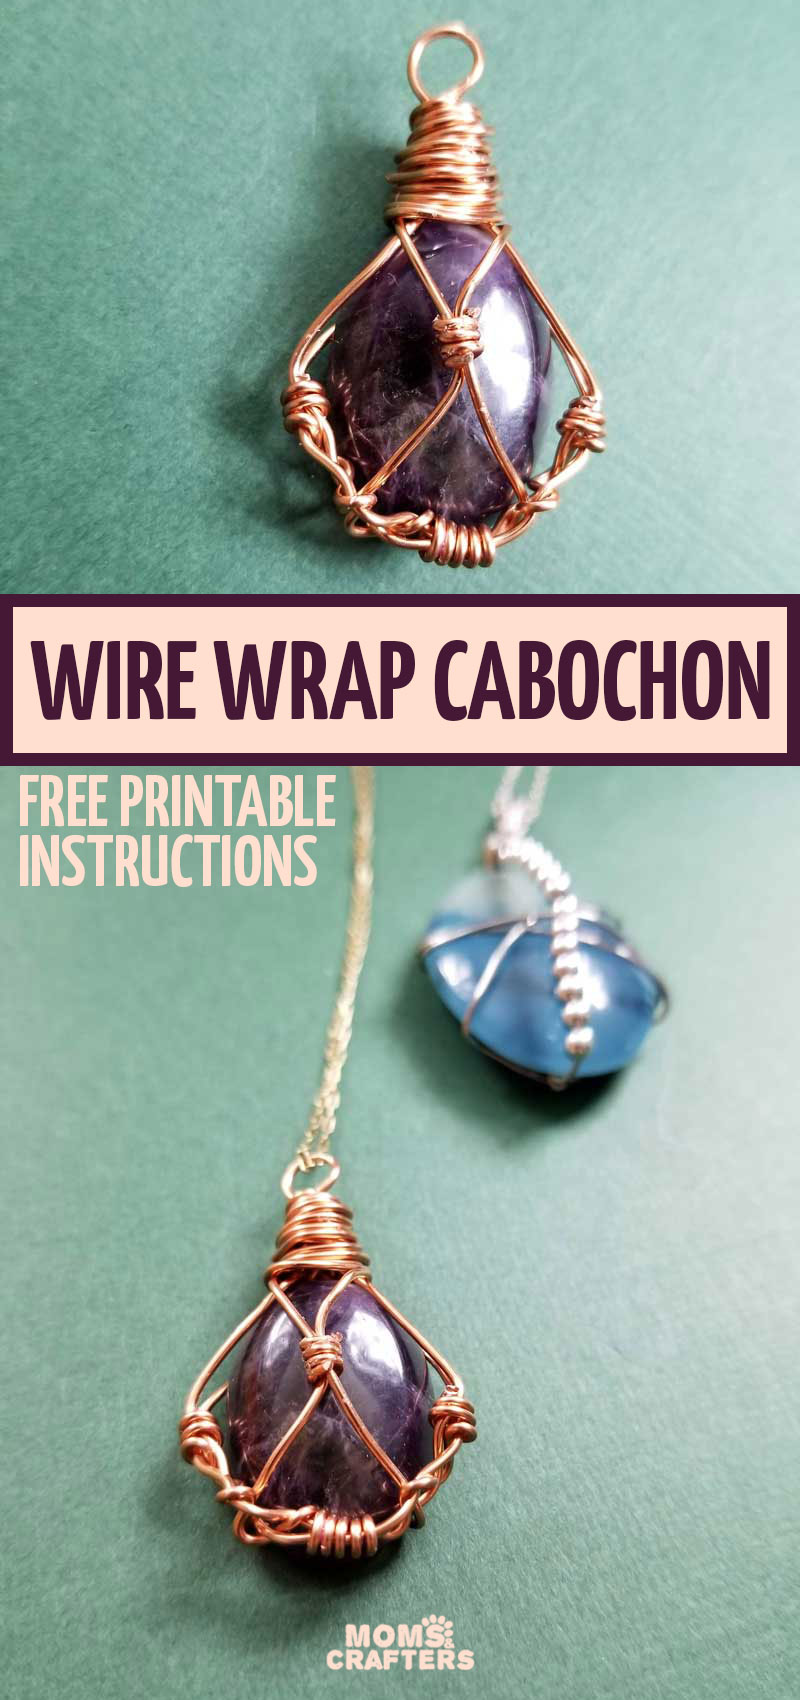 Free printable pattern and instructions to make a DIY wire wrap stone cabochon pendant. This stunning jewelry making craft is fun and easy to follow.